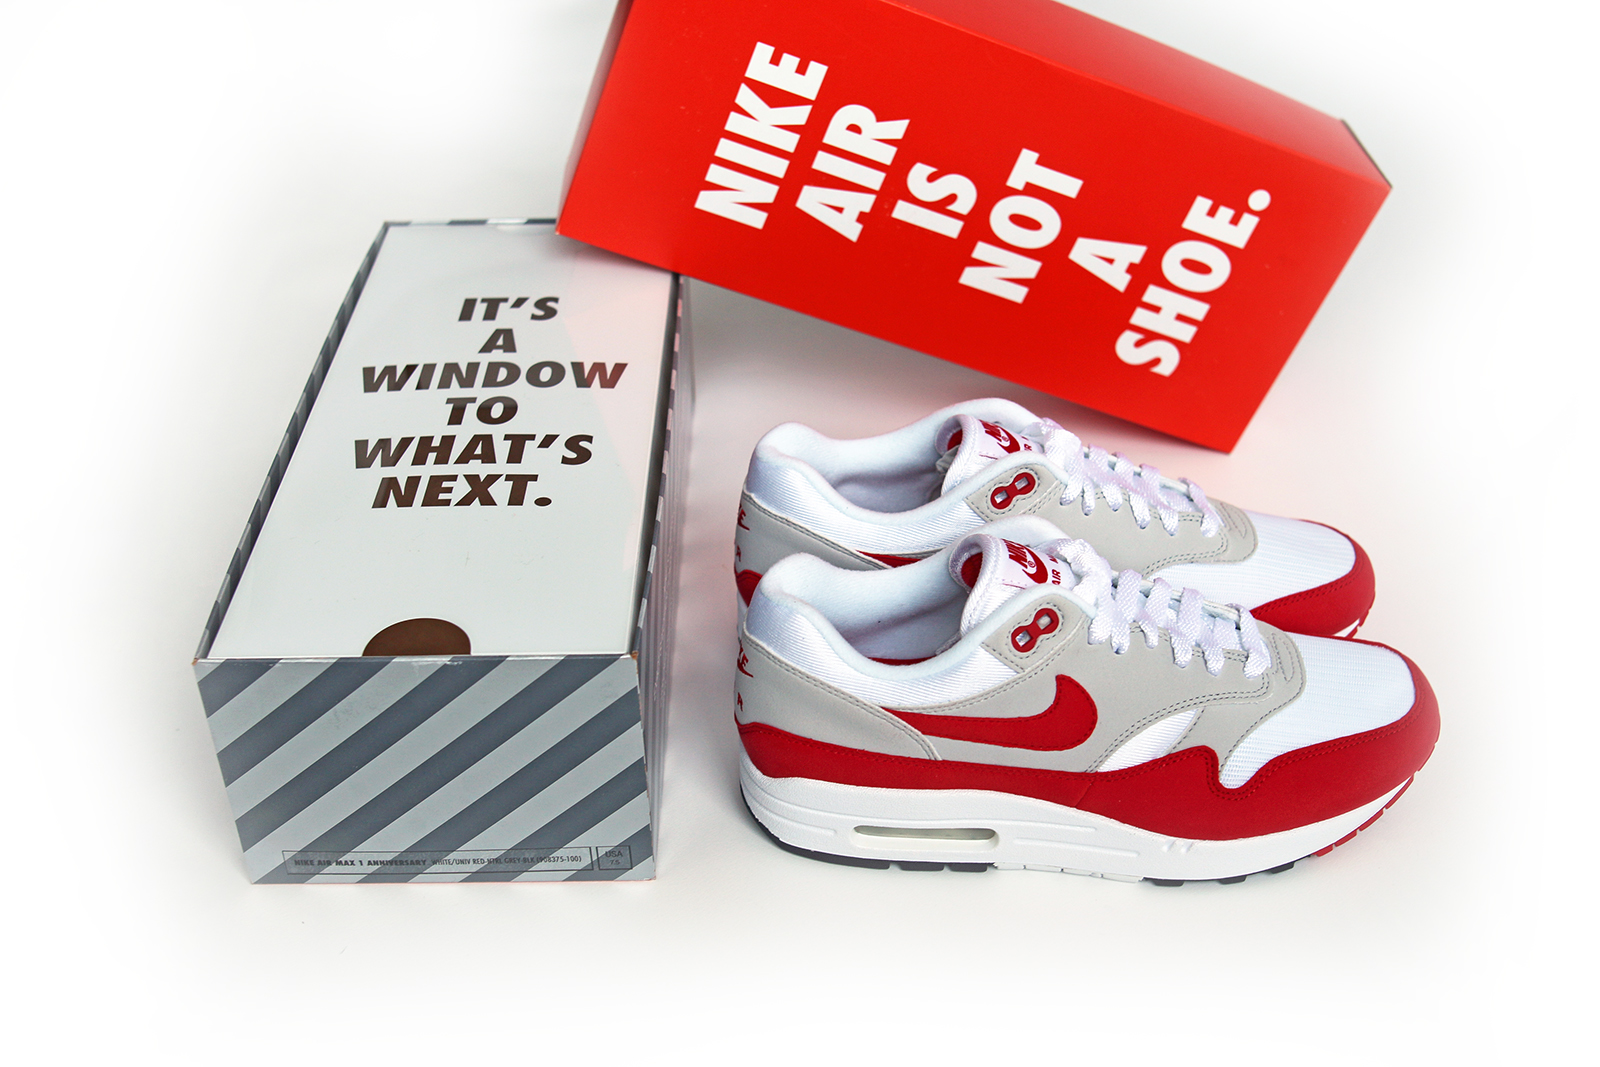 outlet store e7268 da2a6 Peep the Nike Air Max 1 OG Sport Red in all its glory below.